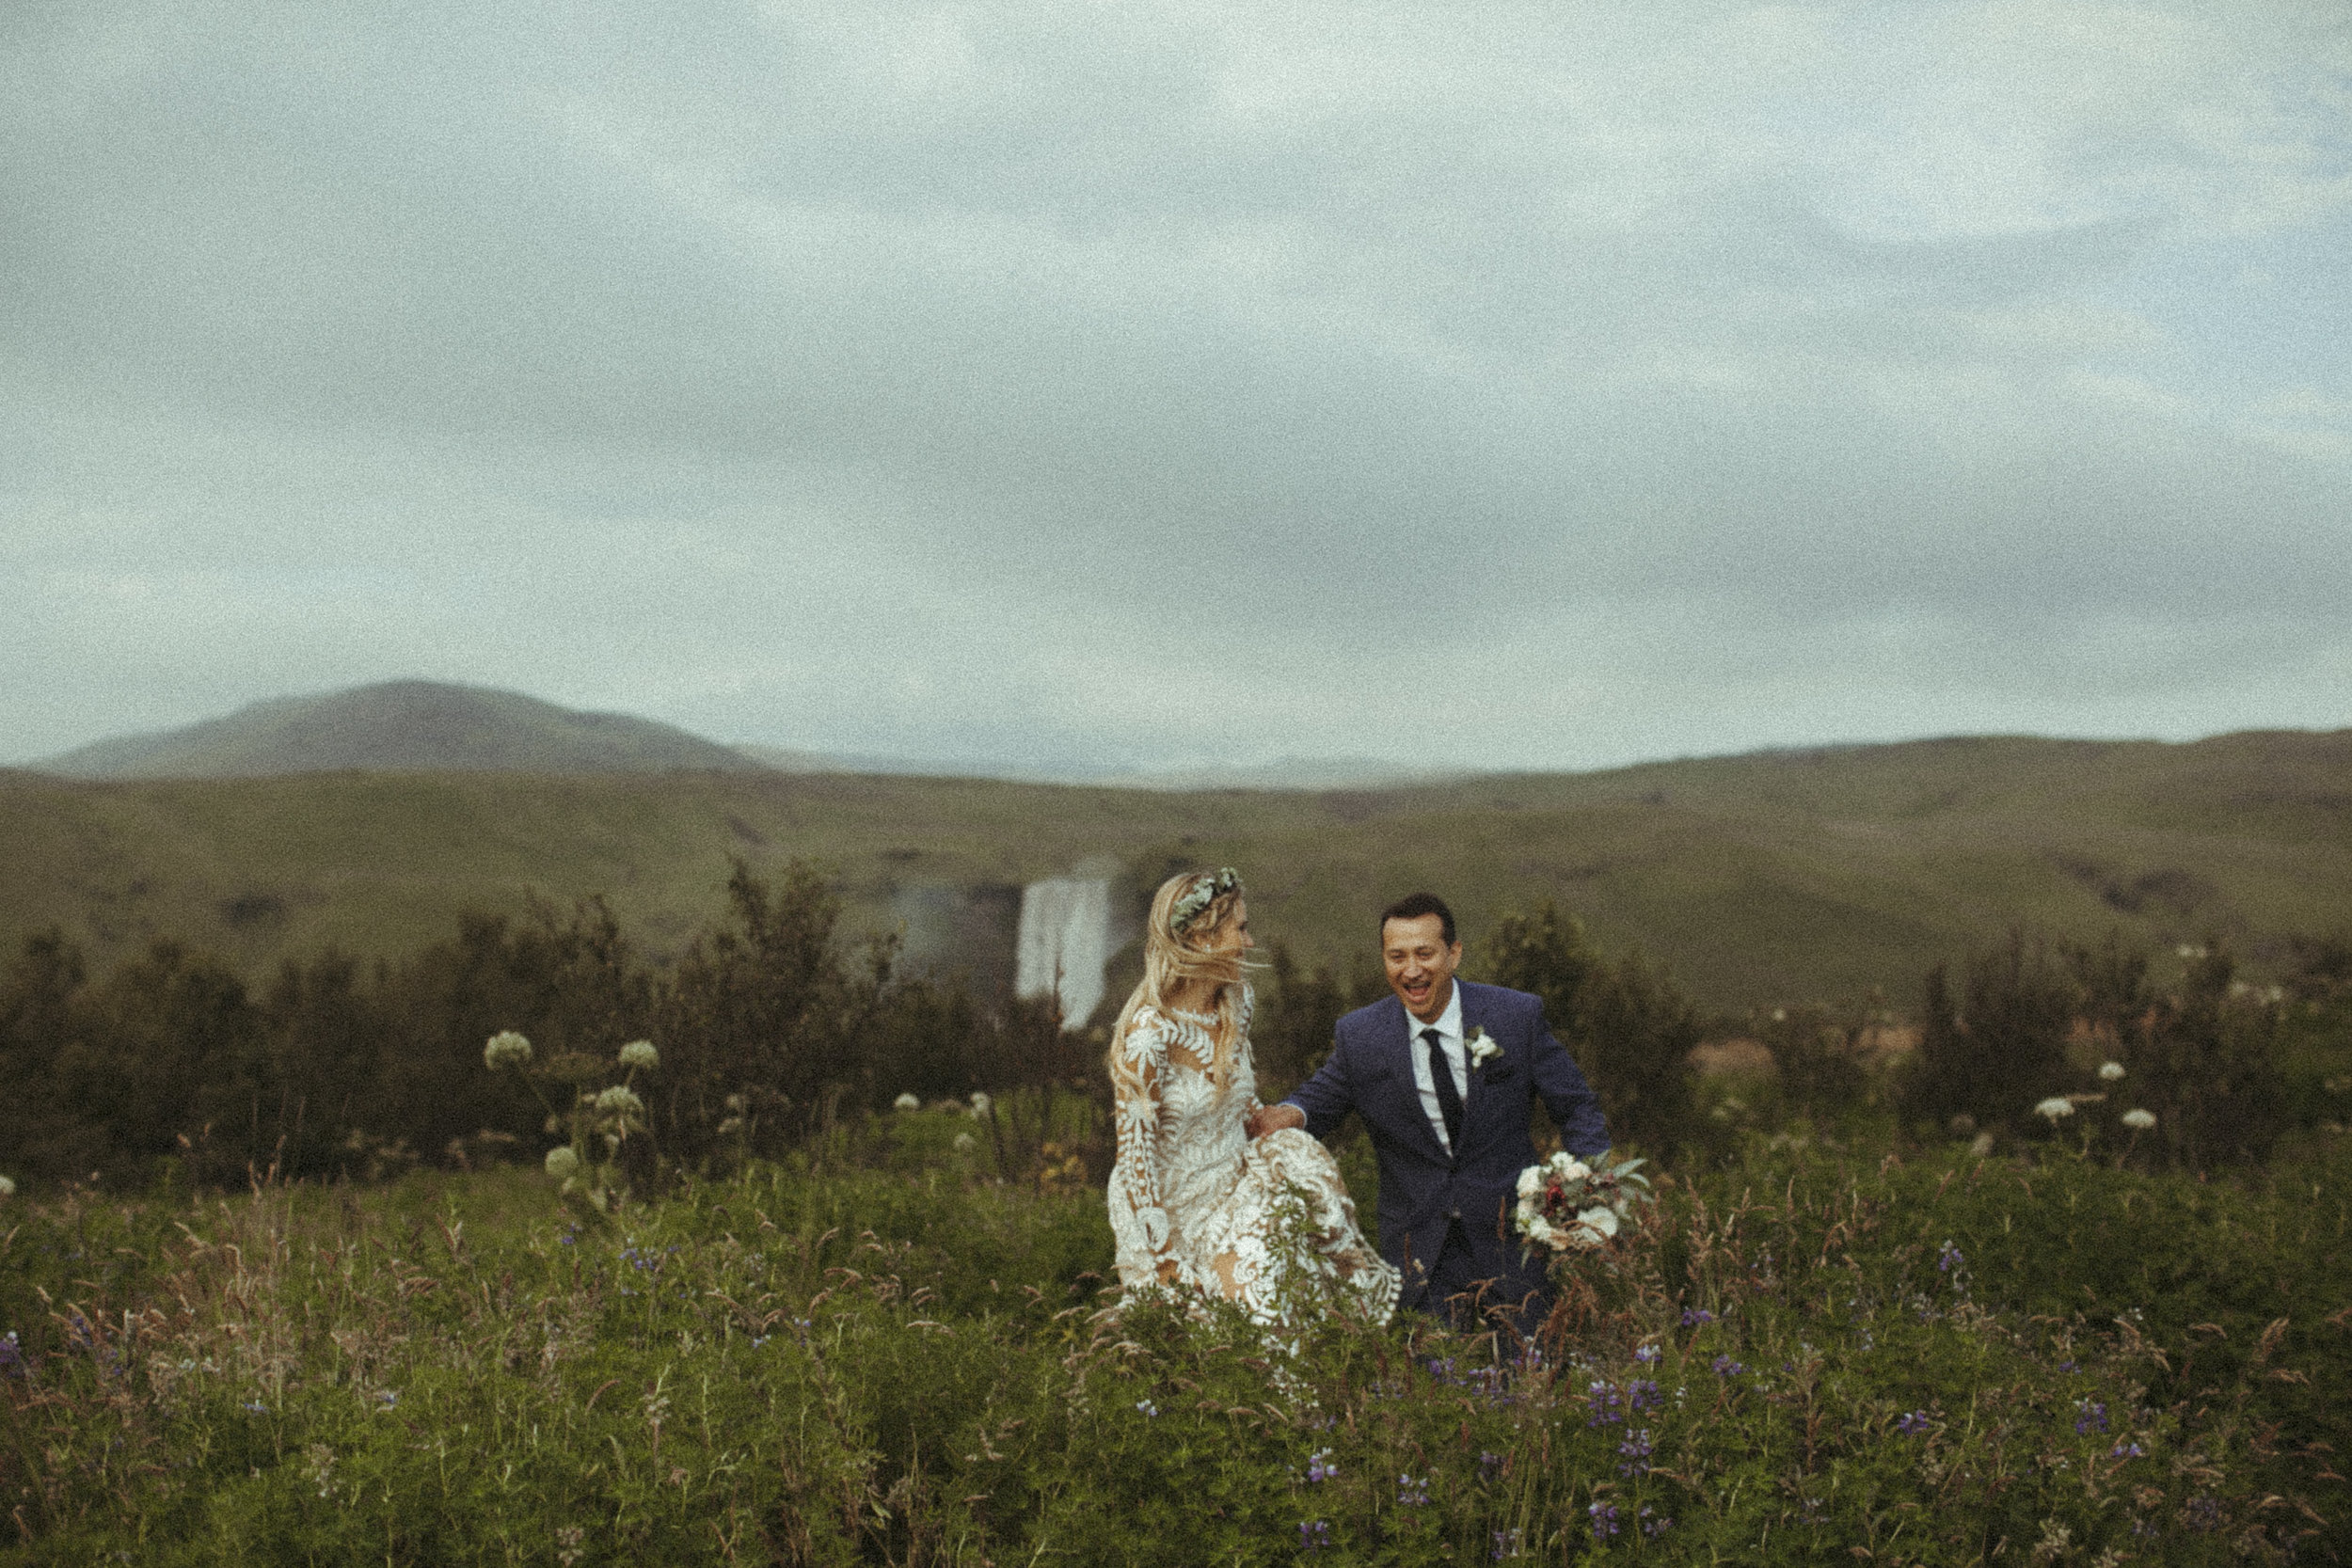 Annie + Mike's Adventure wedding in Iceland - It rained every single day we were there except for their wedding day, and we took full advantage of it and explored it all!